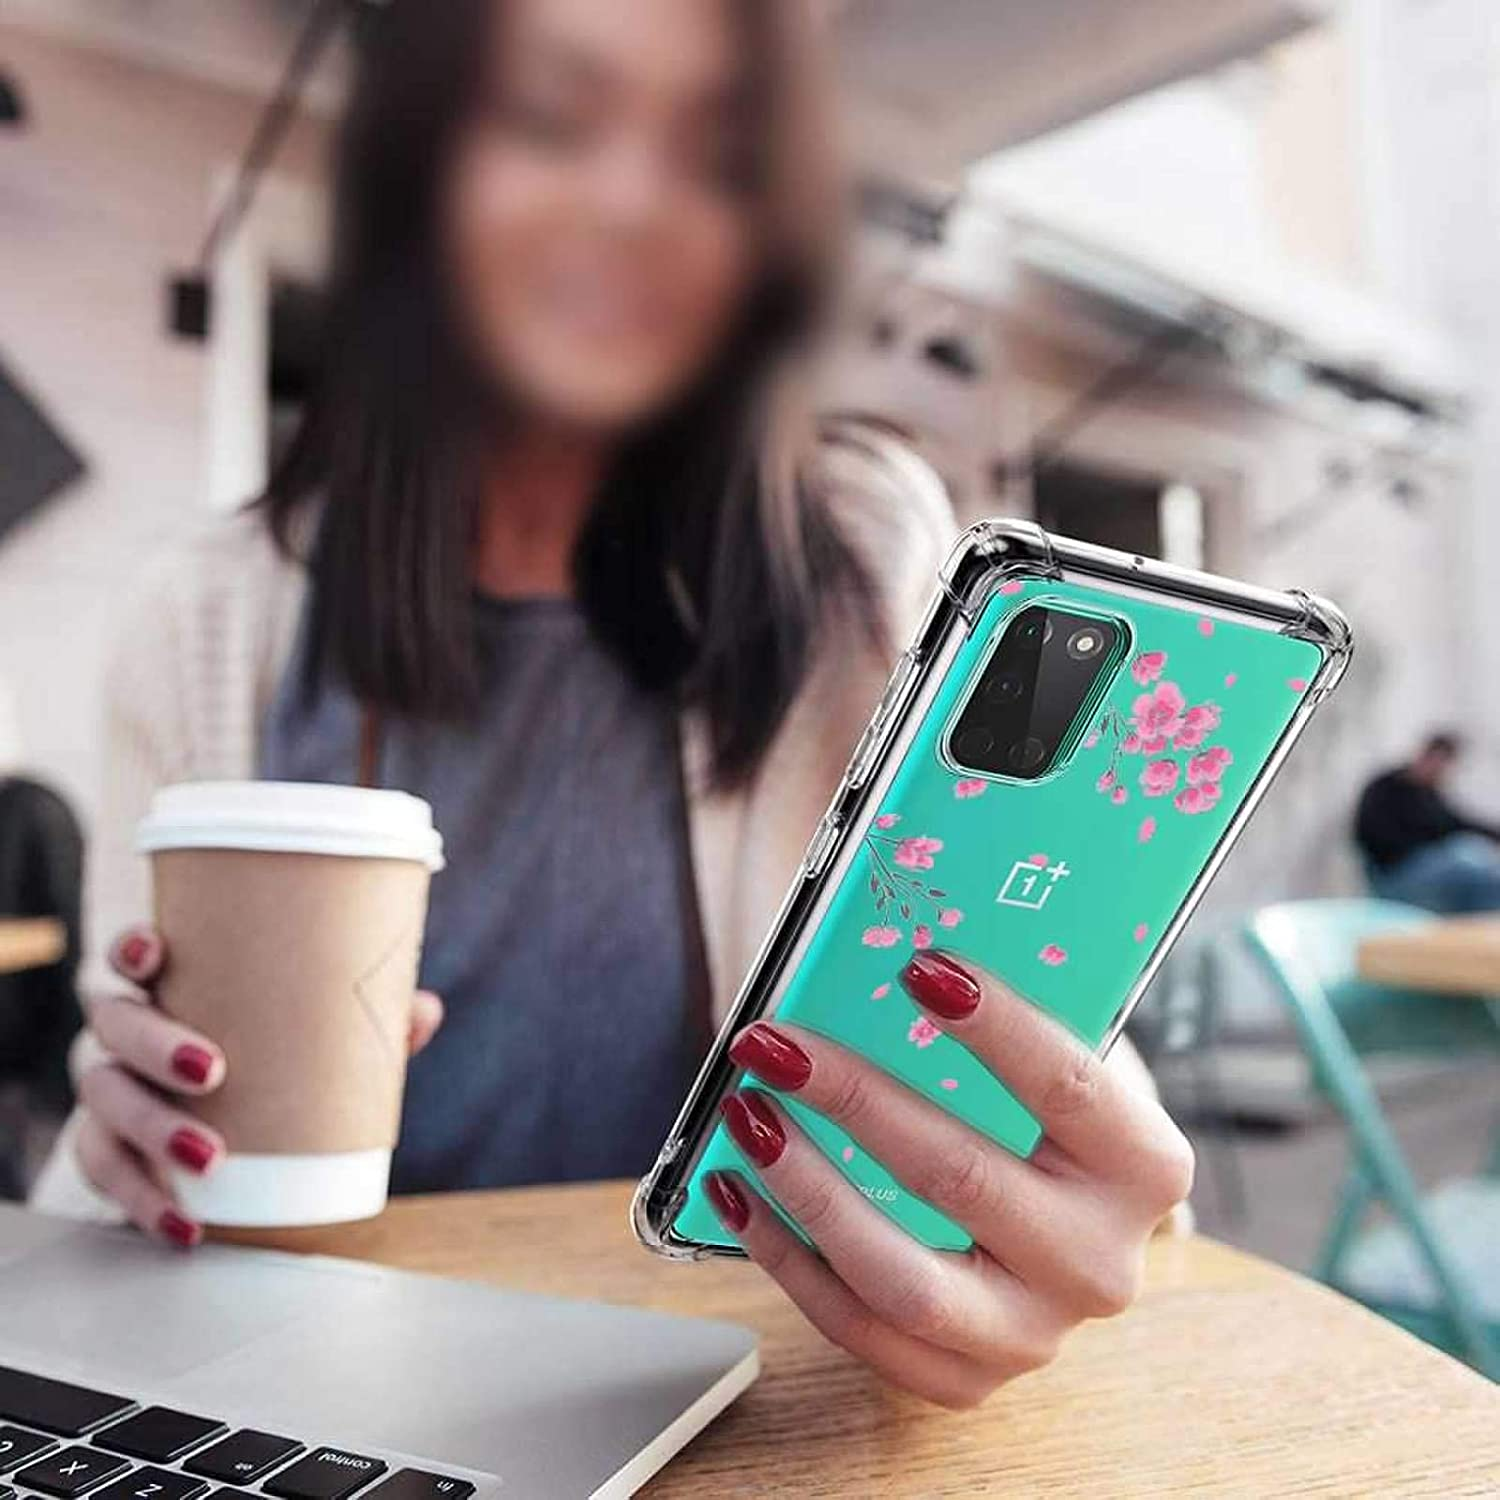 oneplus 8t+ 5g Case with Tempered Glass Screen Protector Clear Soft Shockproof Protective Phone Case Cover for Oneplus 8T 2020,1+8T Oneplus 8T 5g Case Pink Flower Compatible for Oneplus 8T Case